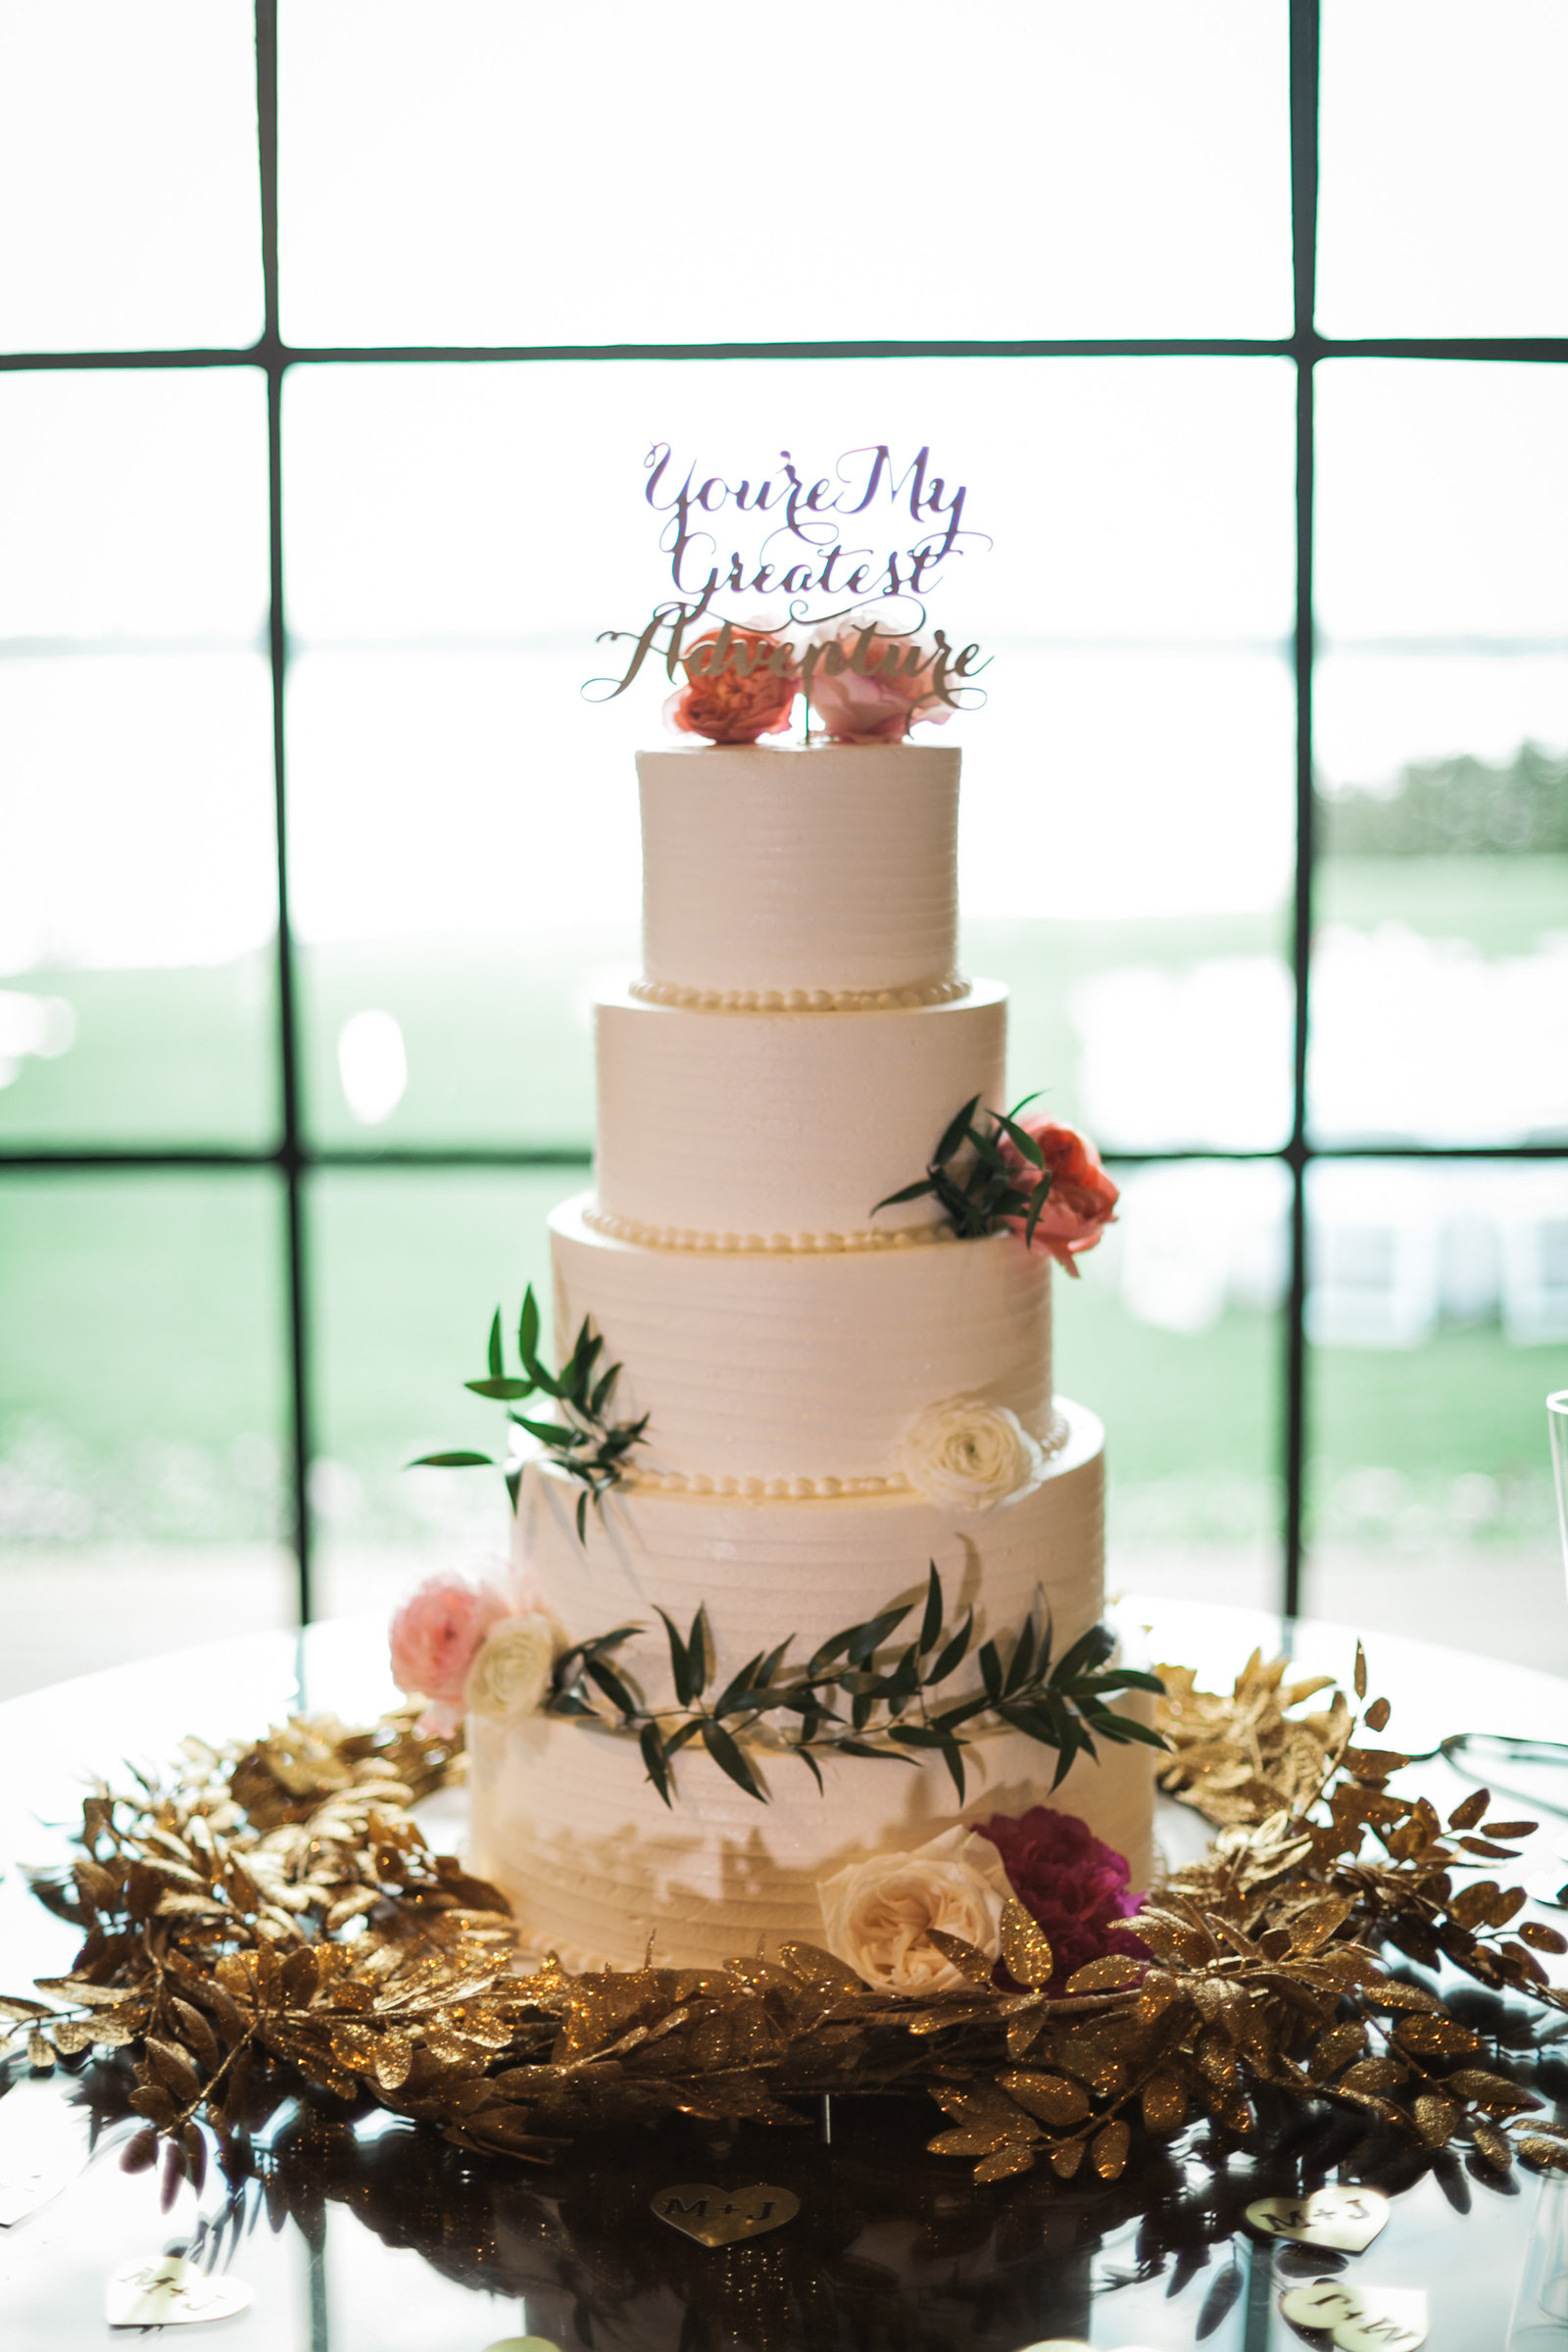 five tier wedding cake from panini bakery for a dallas texas wedding reception